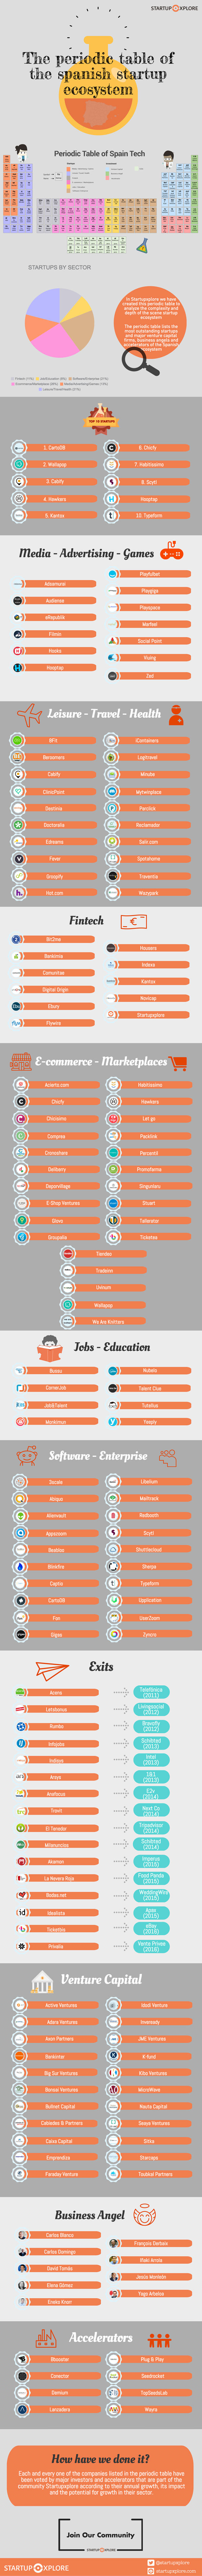 periodic-table-spanish-startups-infographic-s